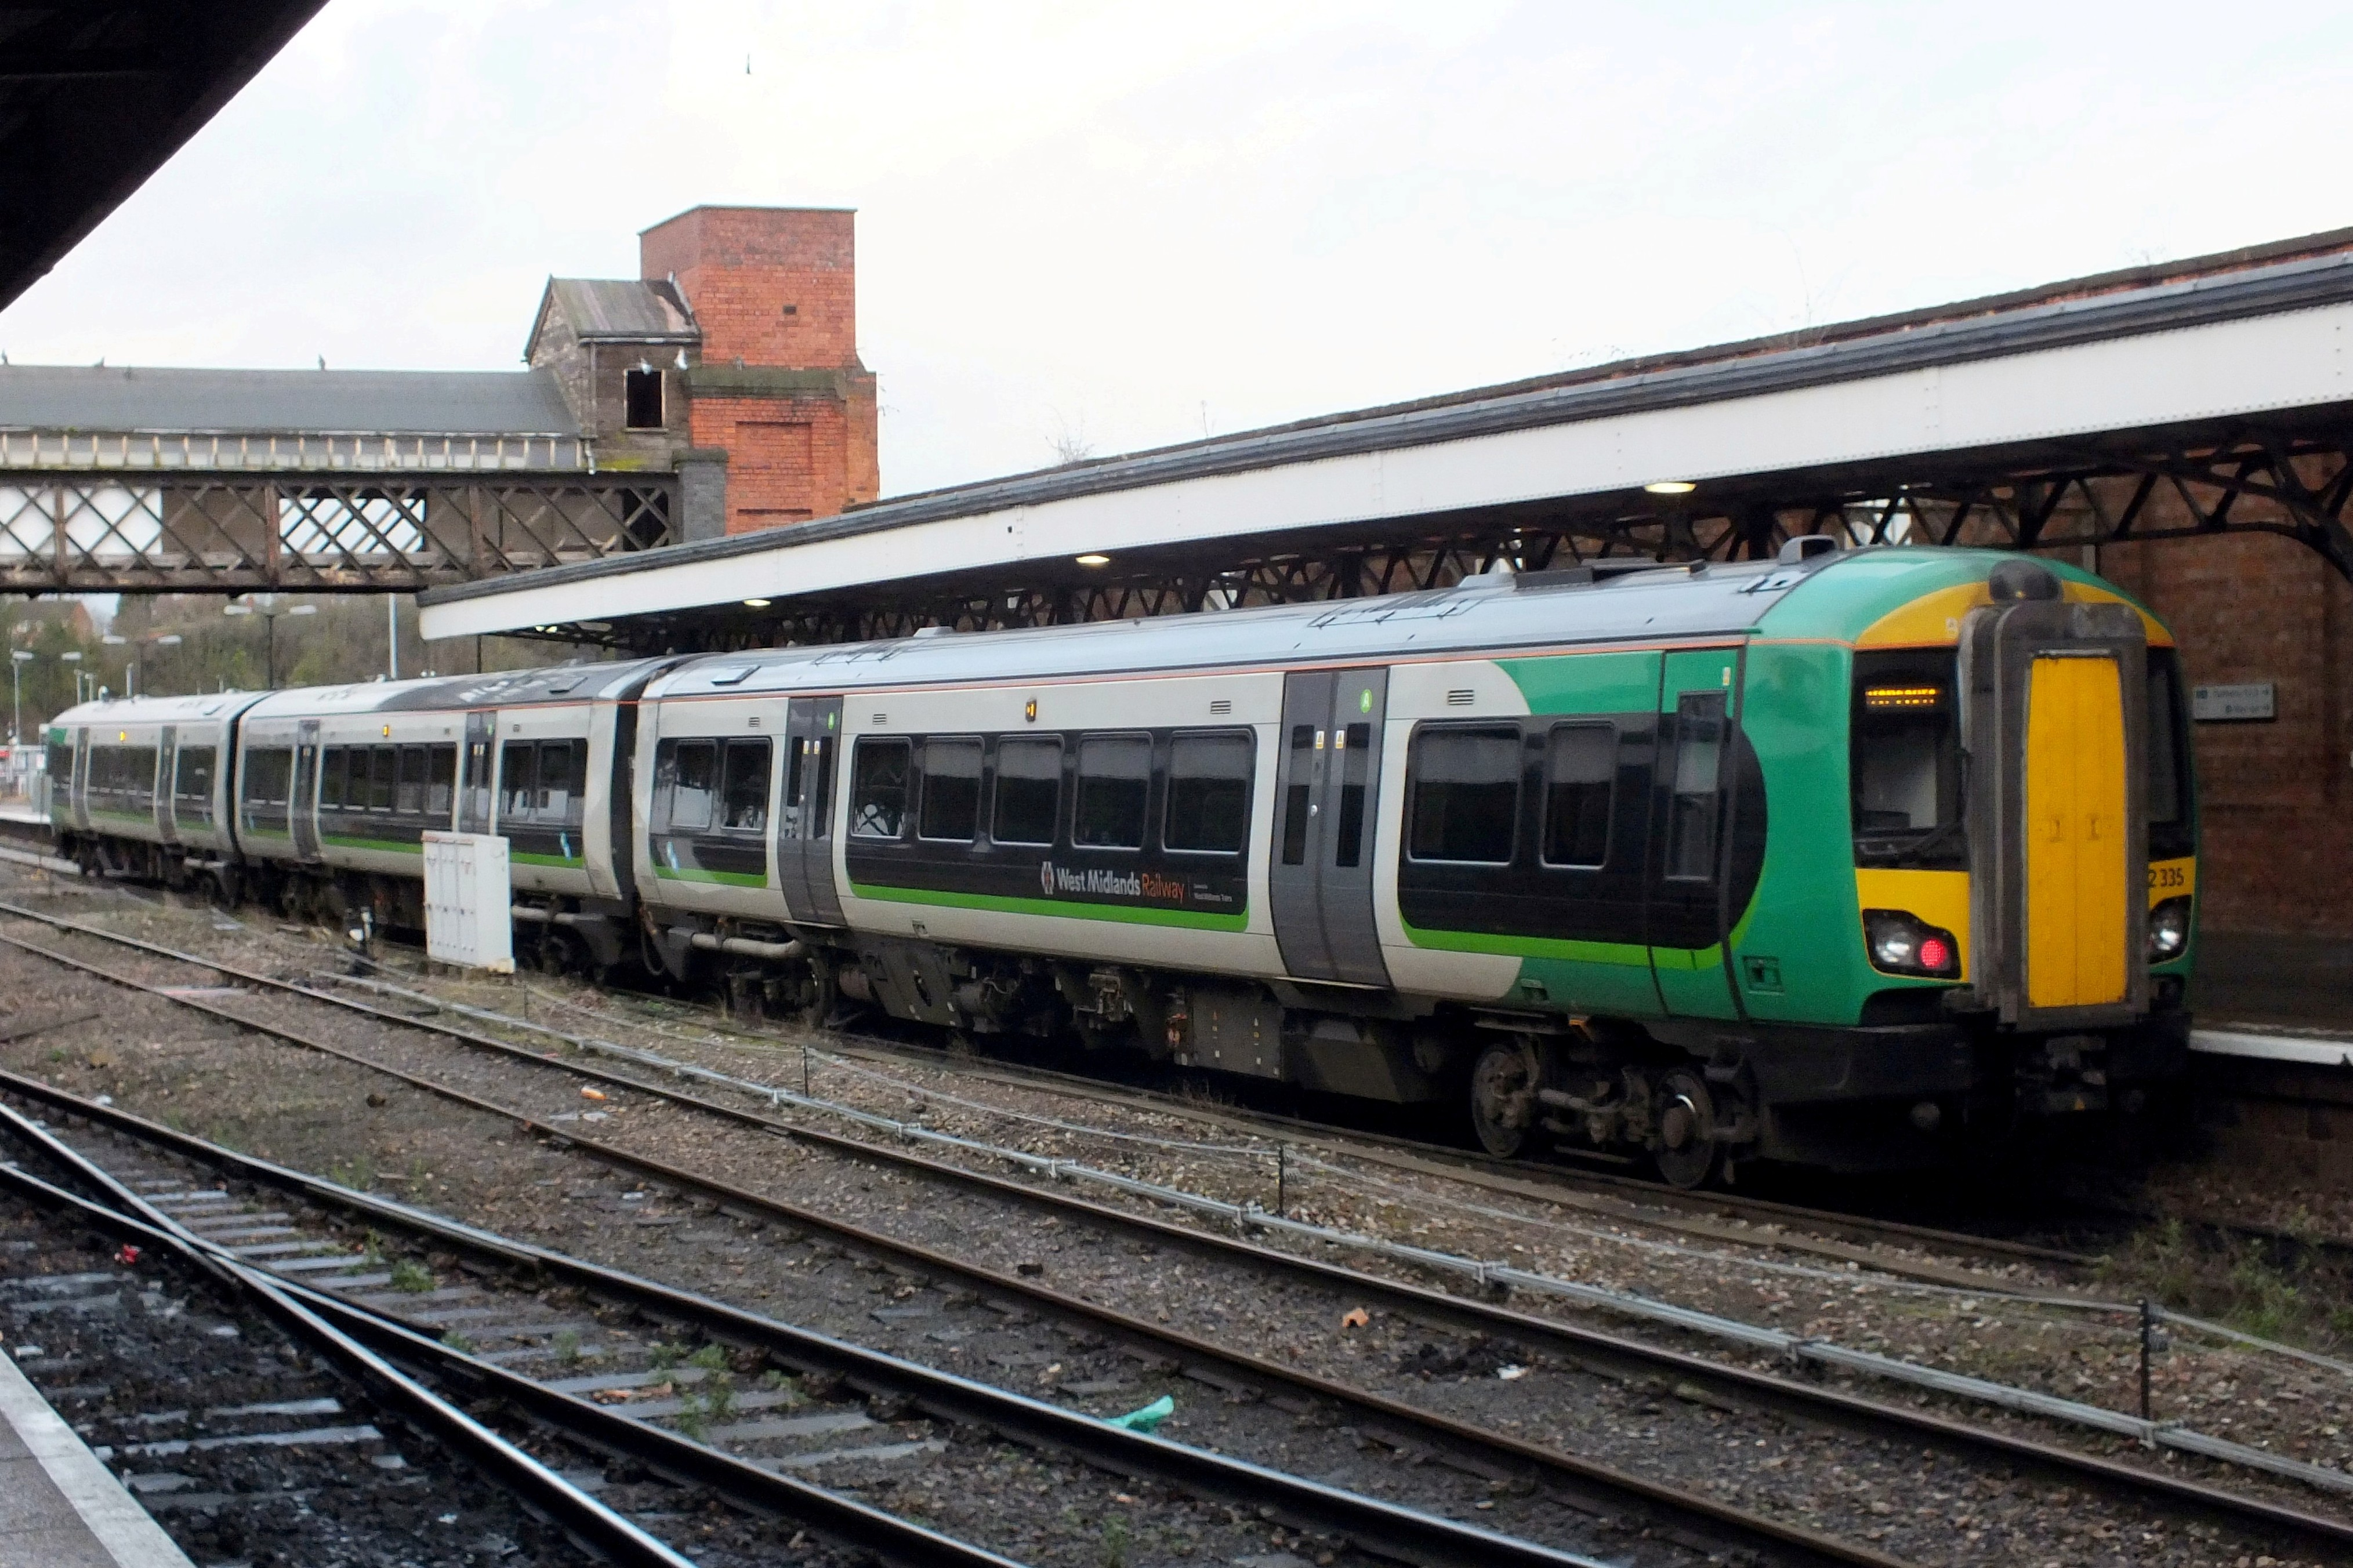 05 January 2018 Shrub Hill 001.jpg